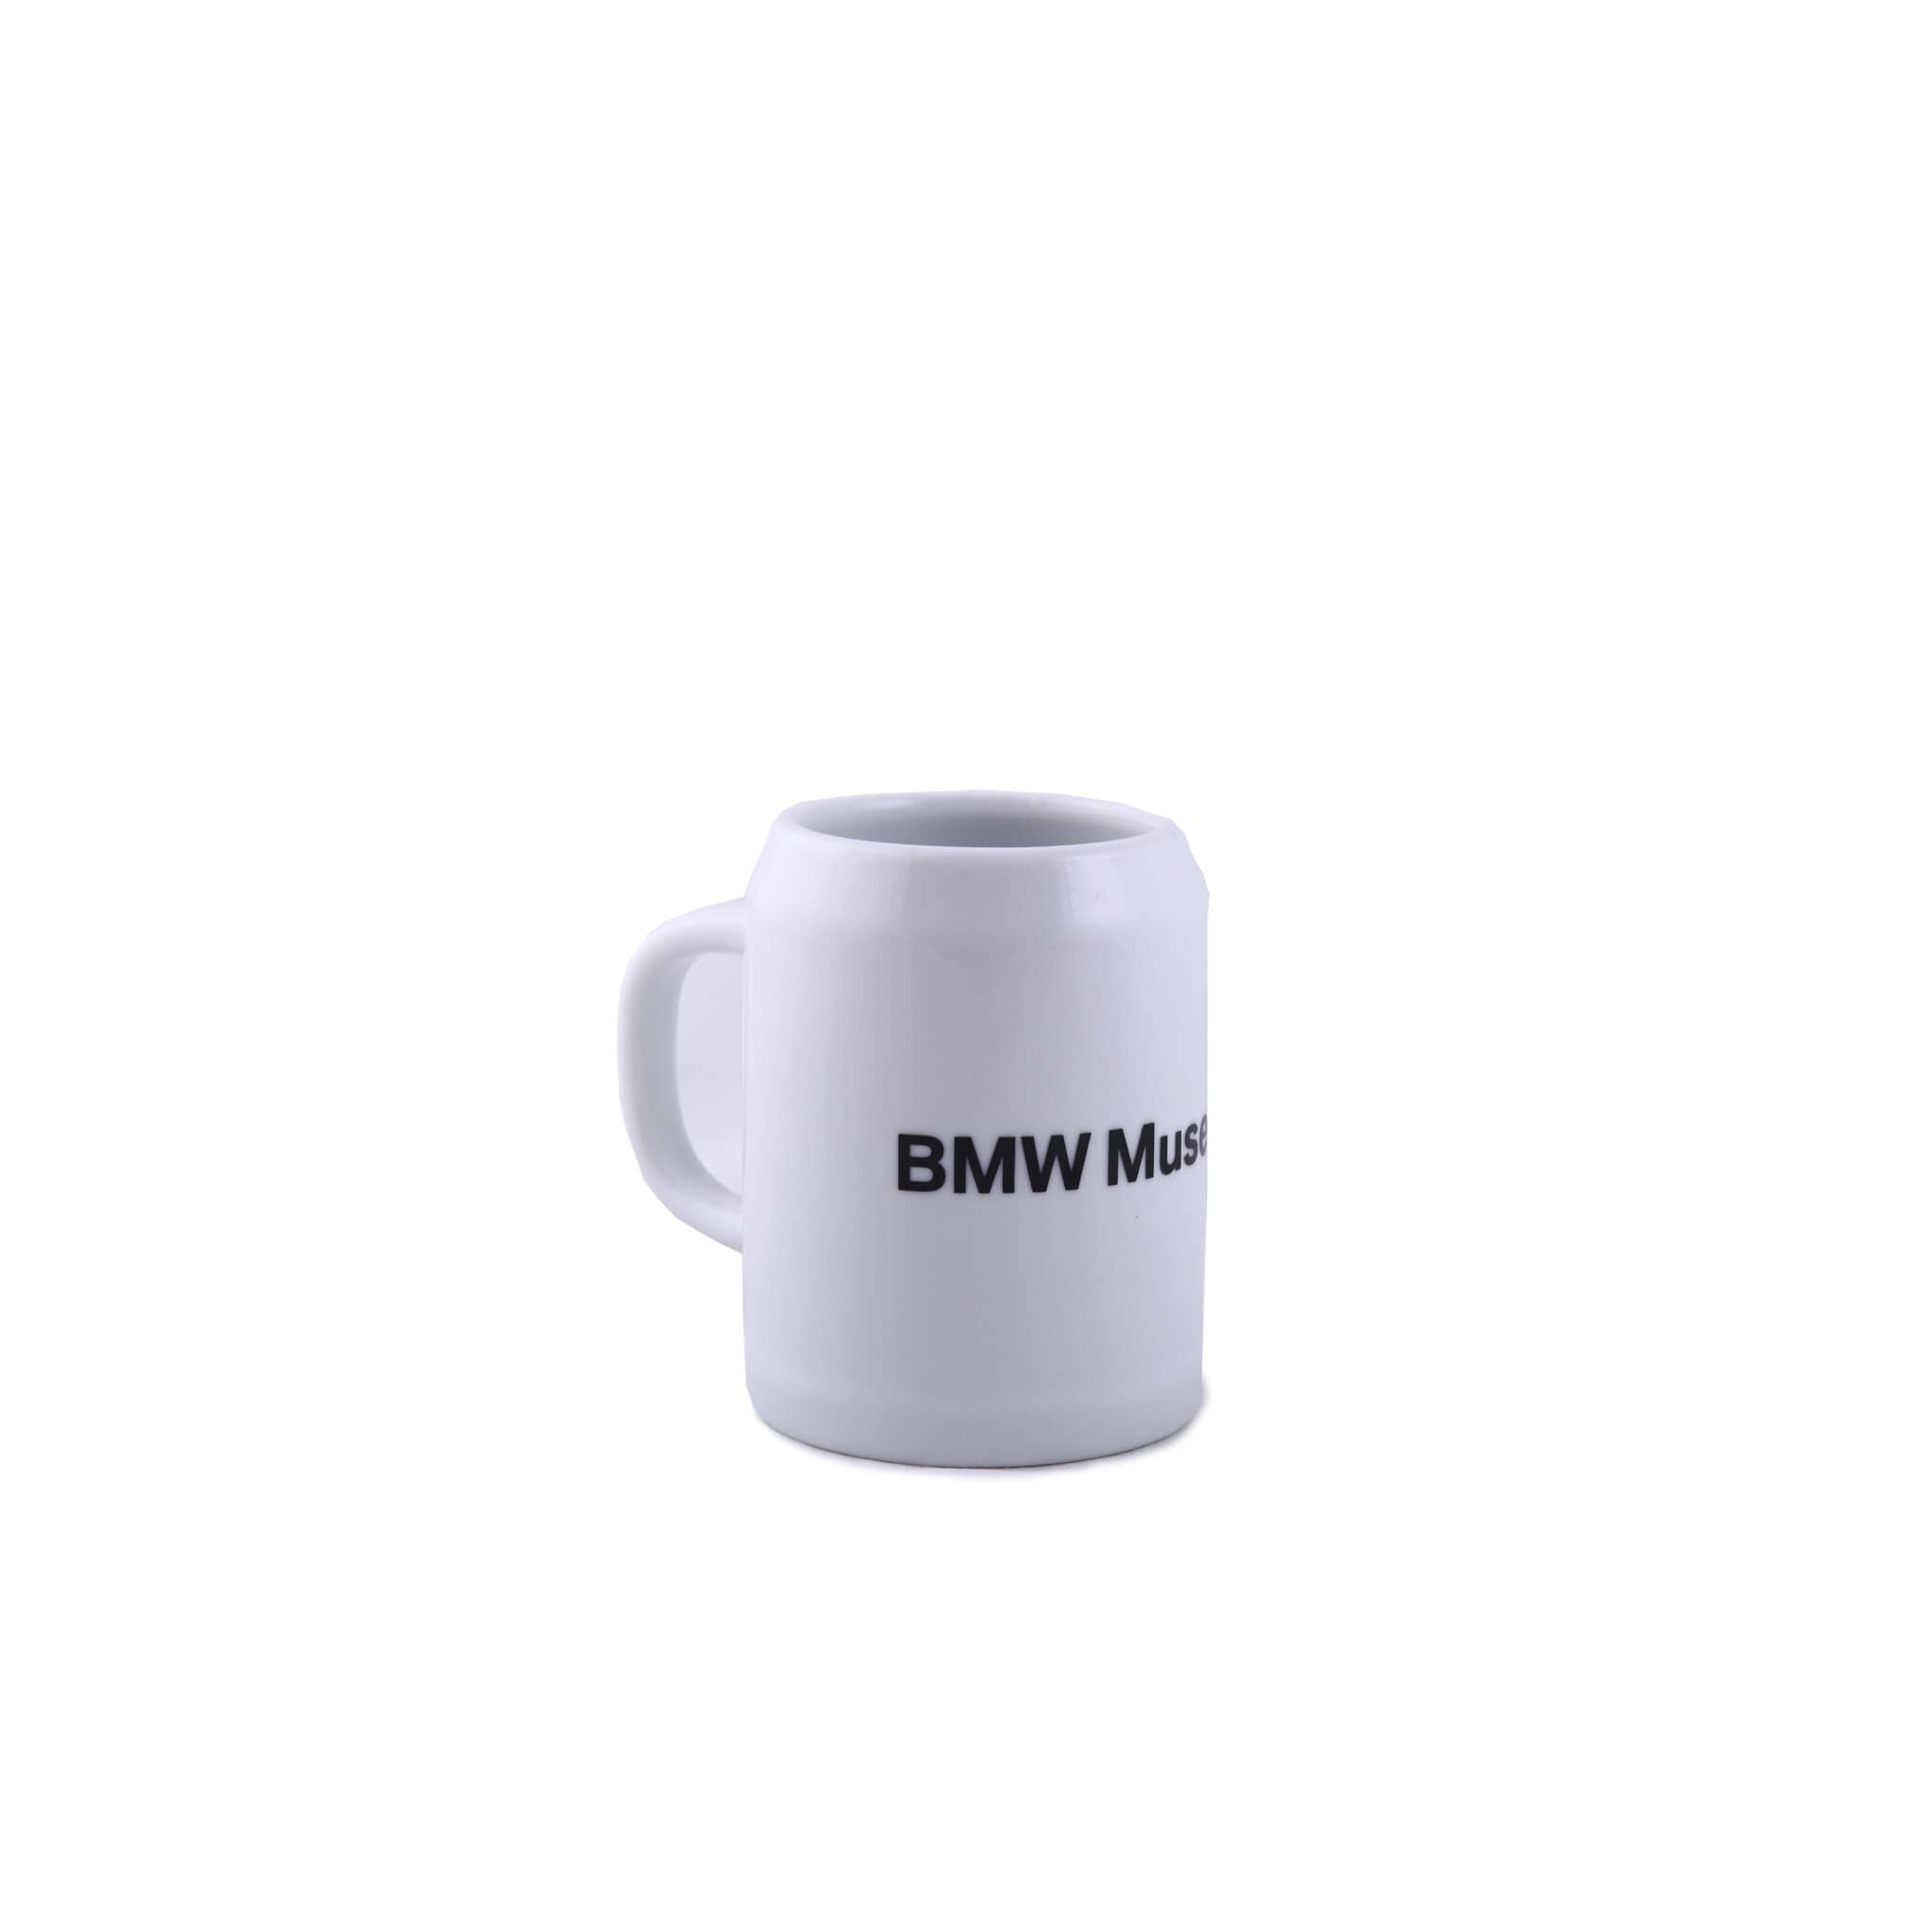 Genuine BMW Museum Ceramic Beer Mug